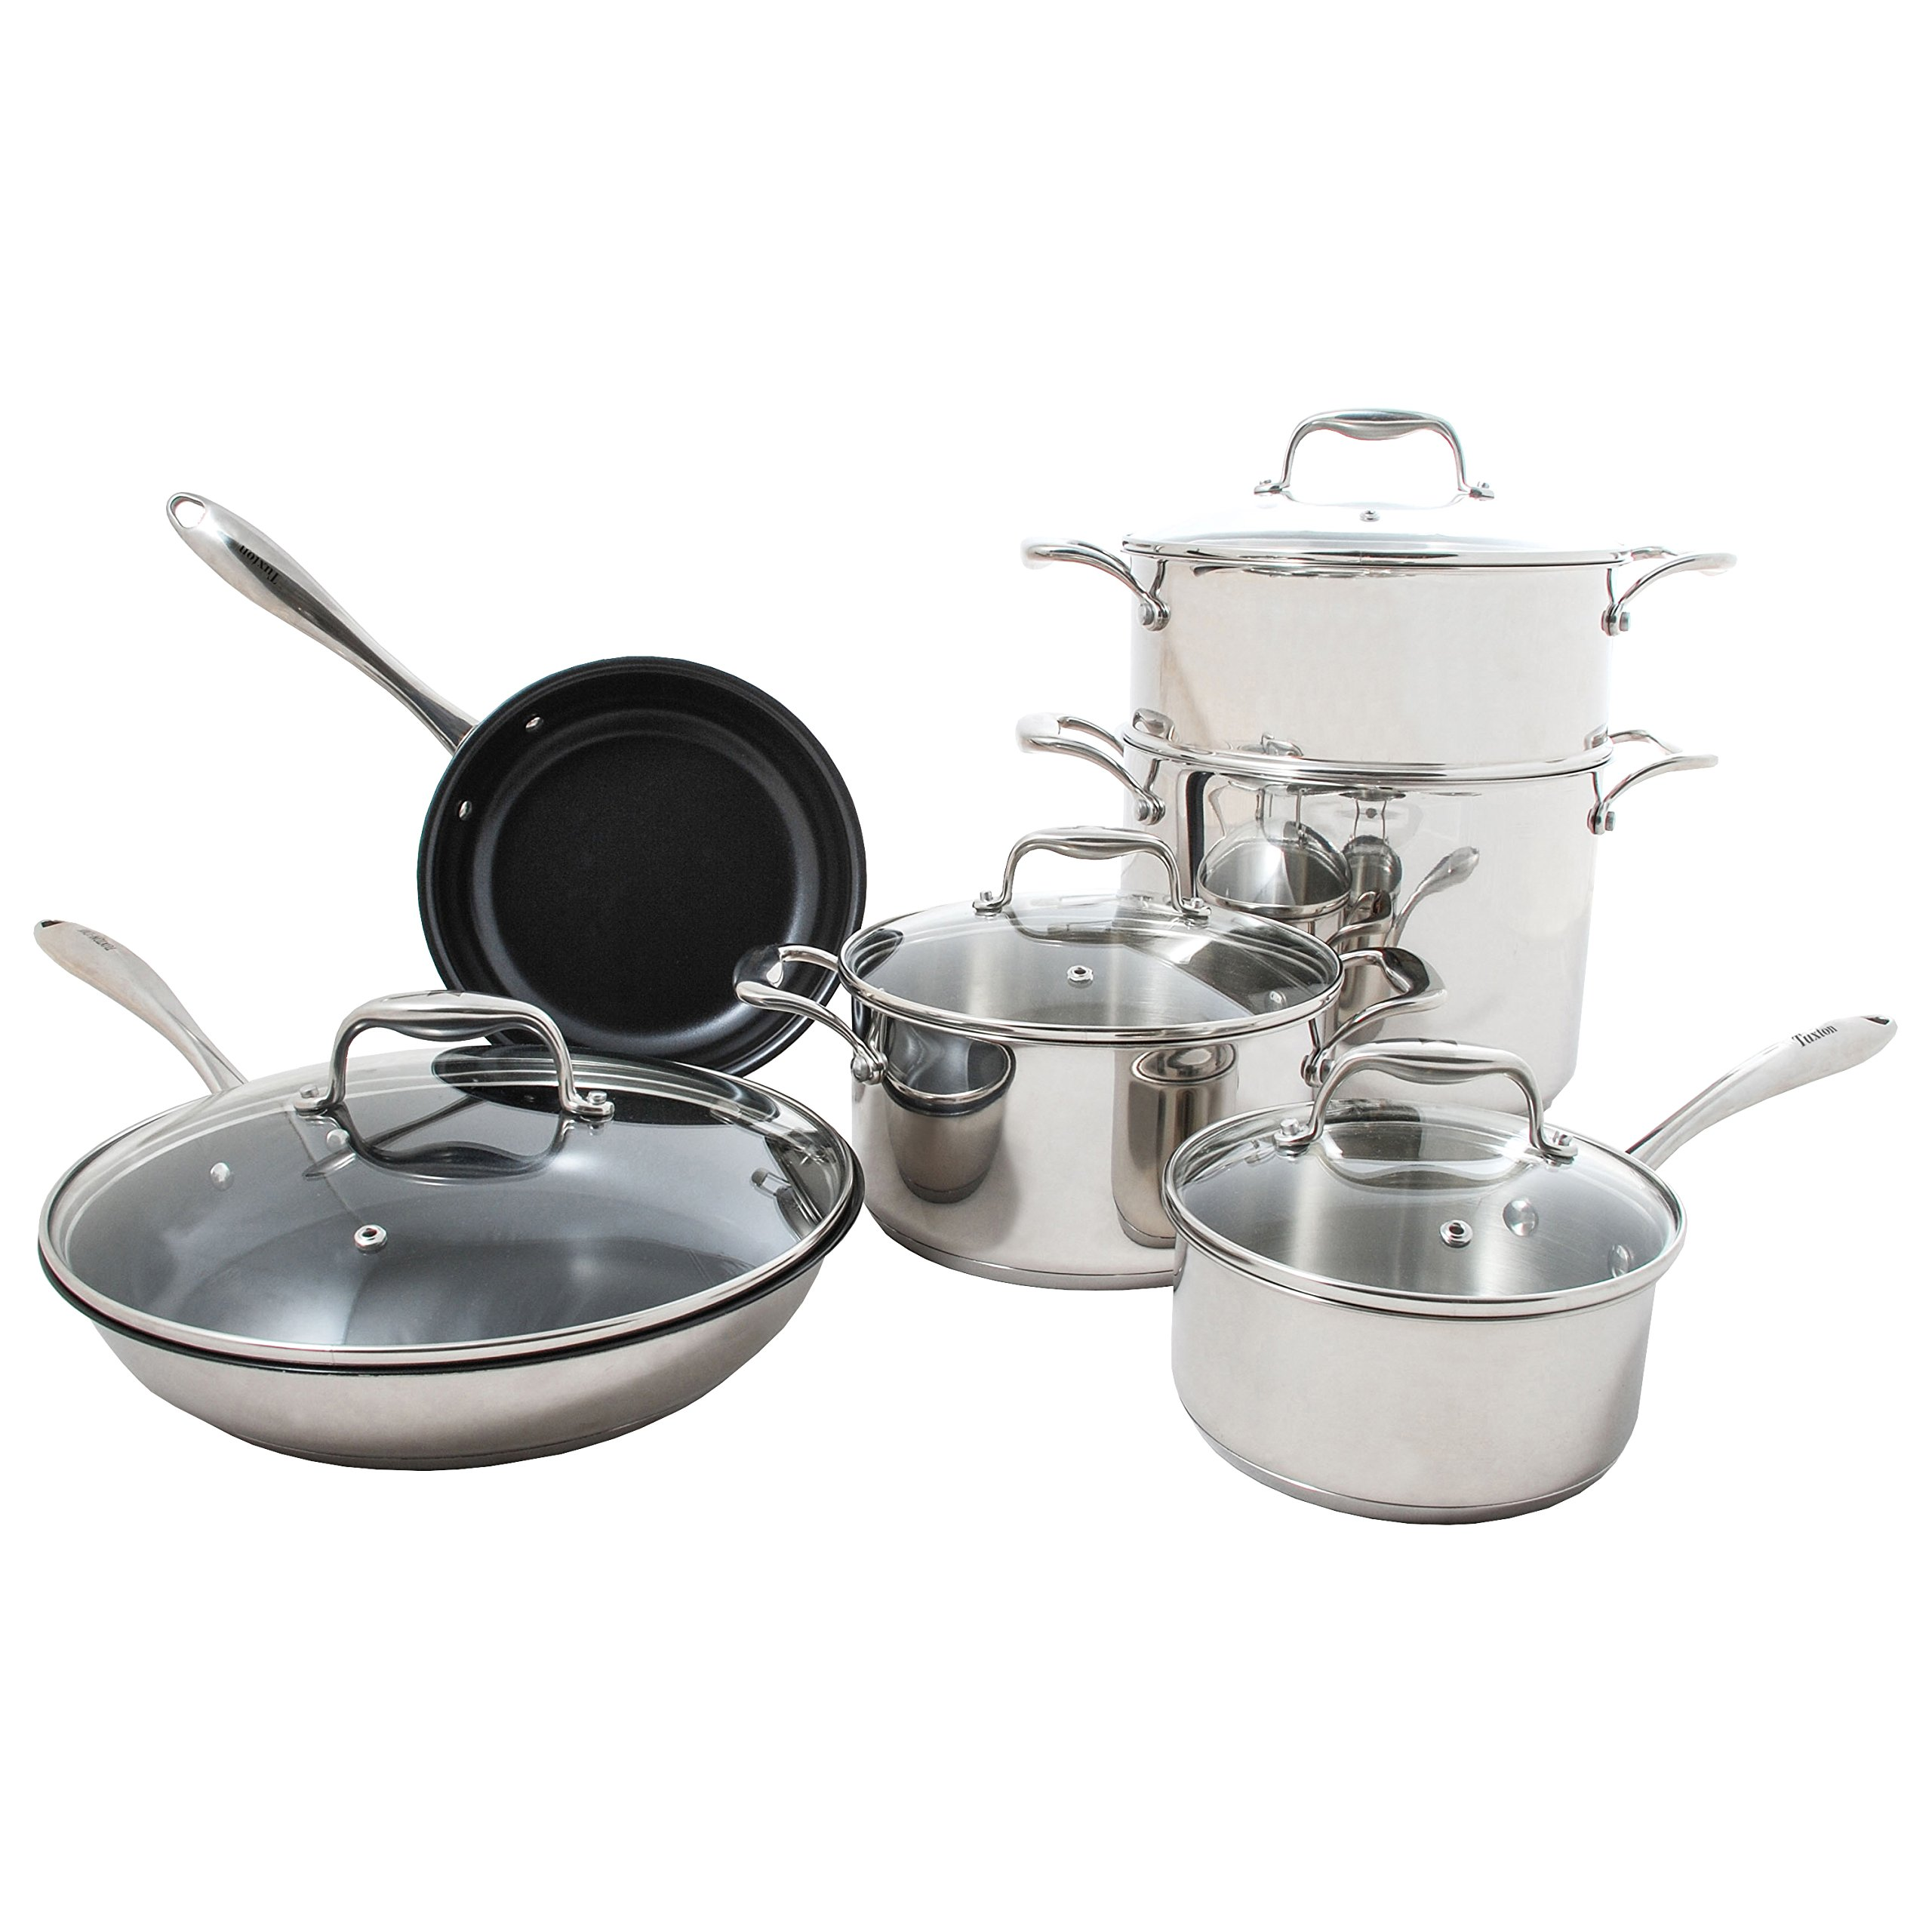 Tuxton Home Concentrix Housewarming 10PC Cookware Set; Stainless Steel, PFTE & PFOA Free, Dishwasher and Oven Safe; Covered Casserole, Stockpot, Steamer Insert, Two Frypans, and Covered Saucepan